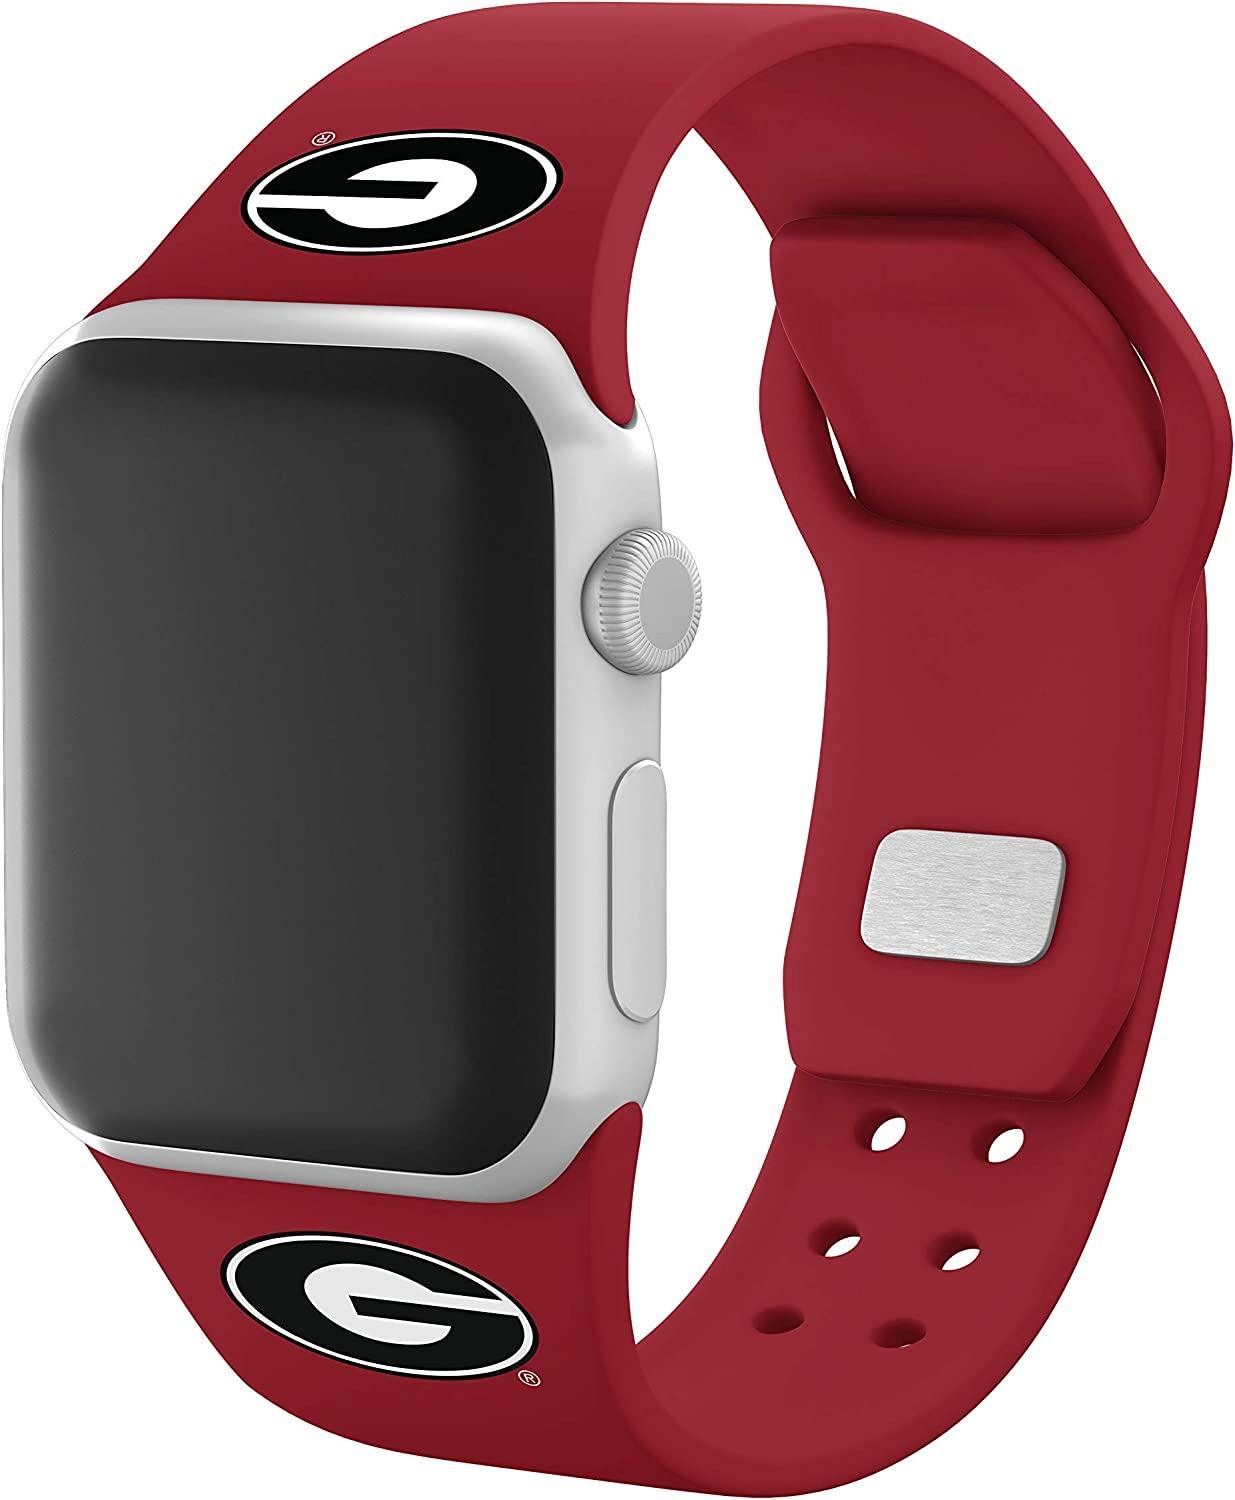 AFFINITY BANDS Georgia Bulldogs Silicone Watch Band Compatible with Apple Watch (Red, 42/44mm)